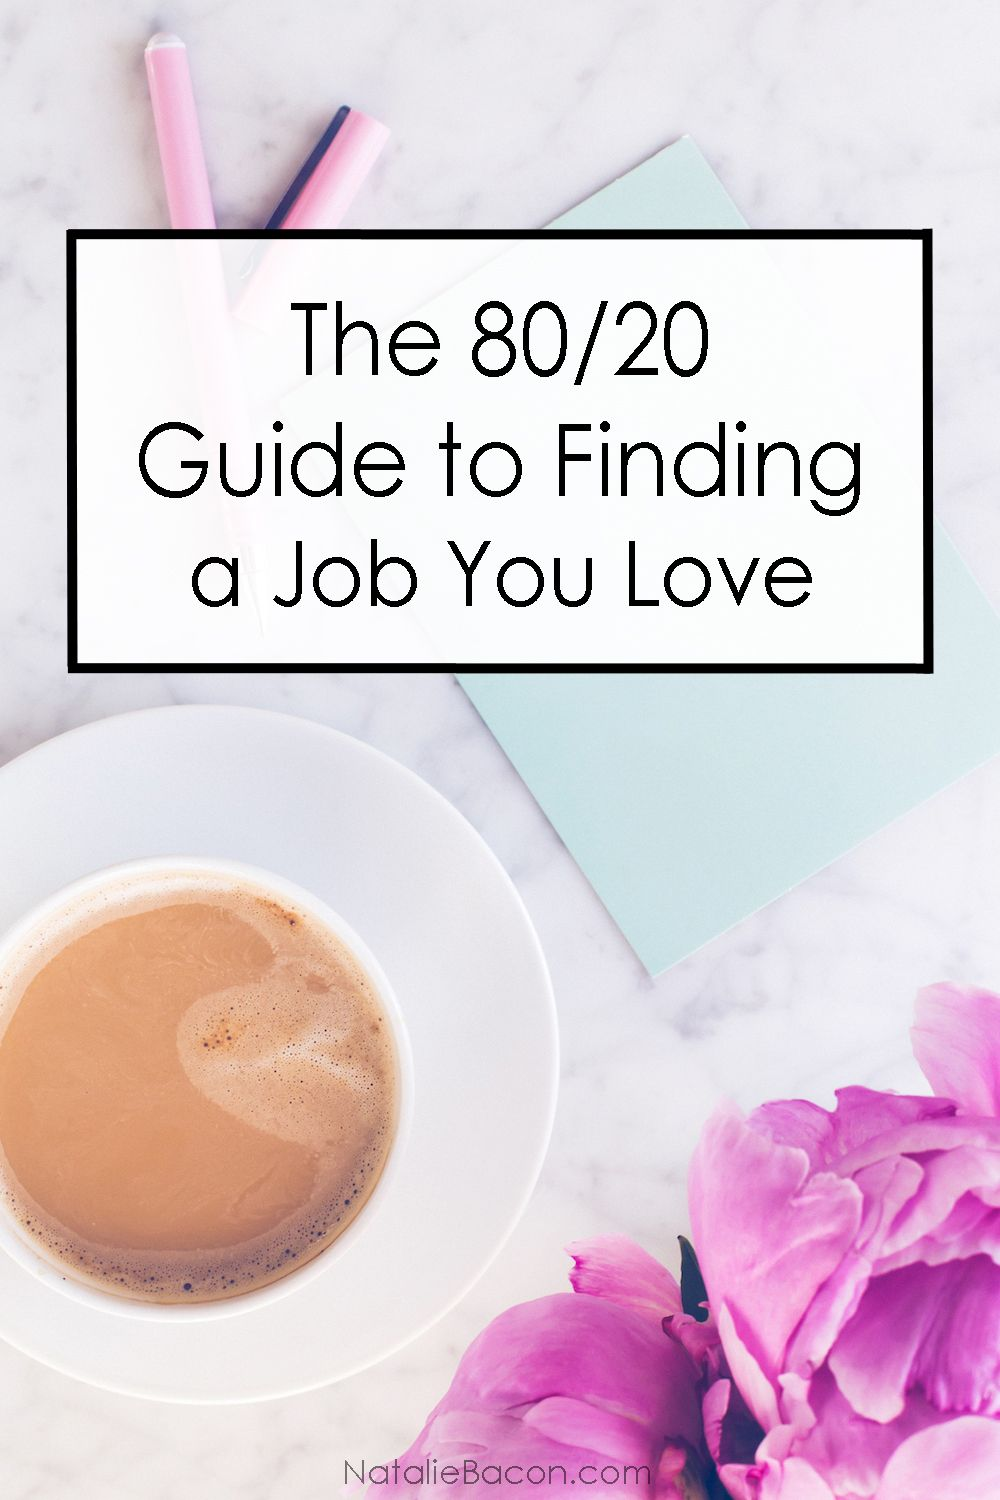 The 80/20 Guide To Finding a Job You Love Find a job